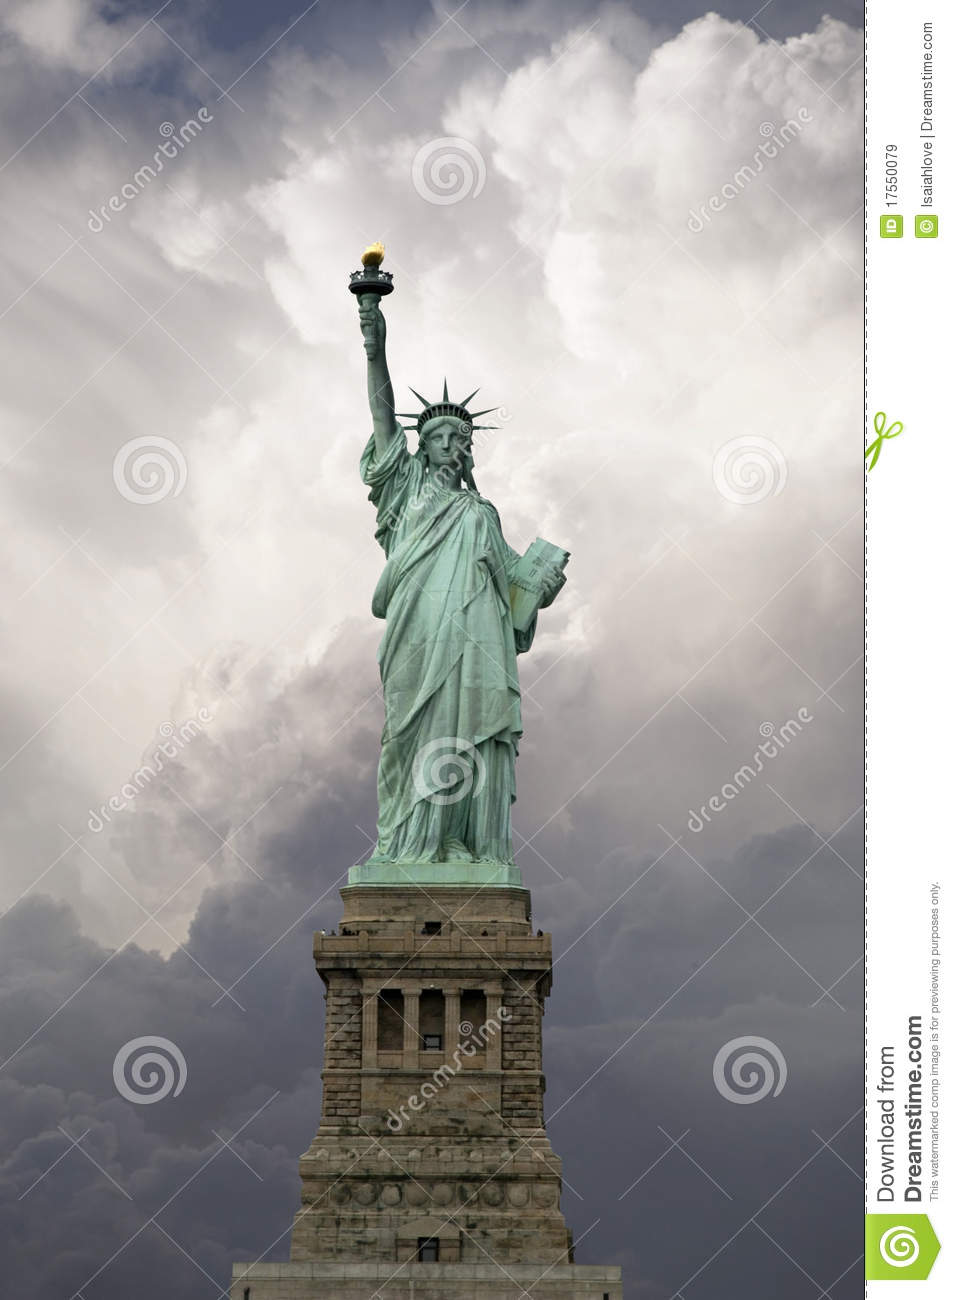 statue-liberty-front-view-17550079 Nature Technology Home Design on interior design nature, painting nature, beauty nature, fishing nature, kitchen design nature, science nature, animals nature, home art nature, graphic design nature, architecture nature, photography nature, home drawing nature, diy nature, holiday nature,